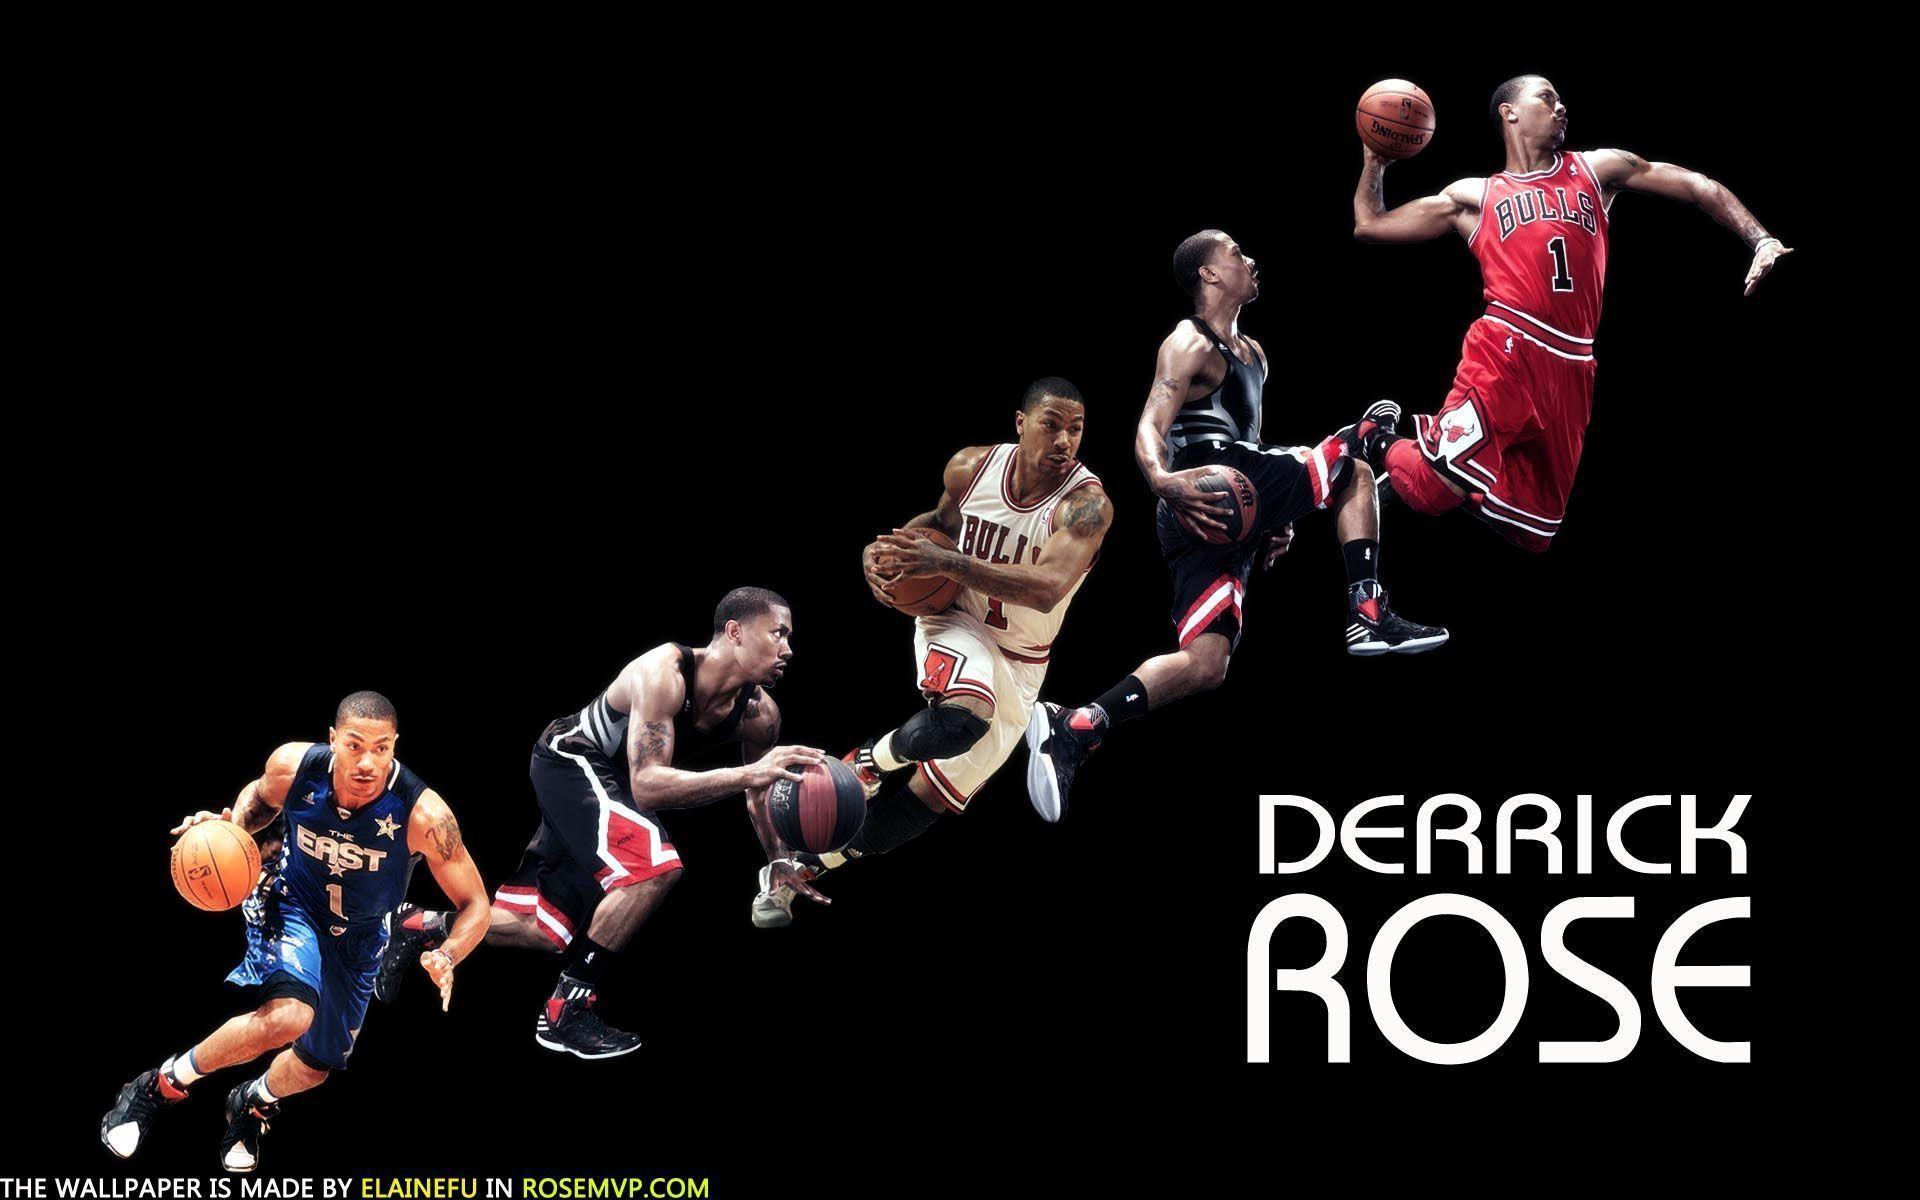 derrick rose wallpaper iphone - photo #21